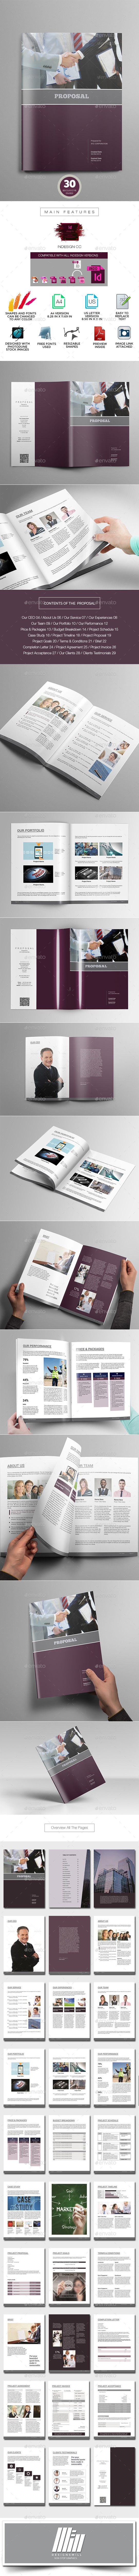 Business Plan - Proposals & Invoices Stationery